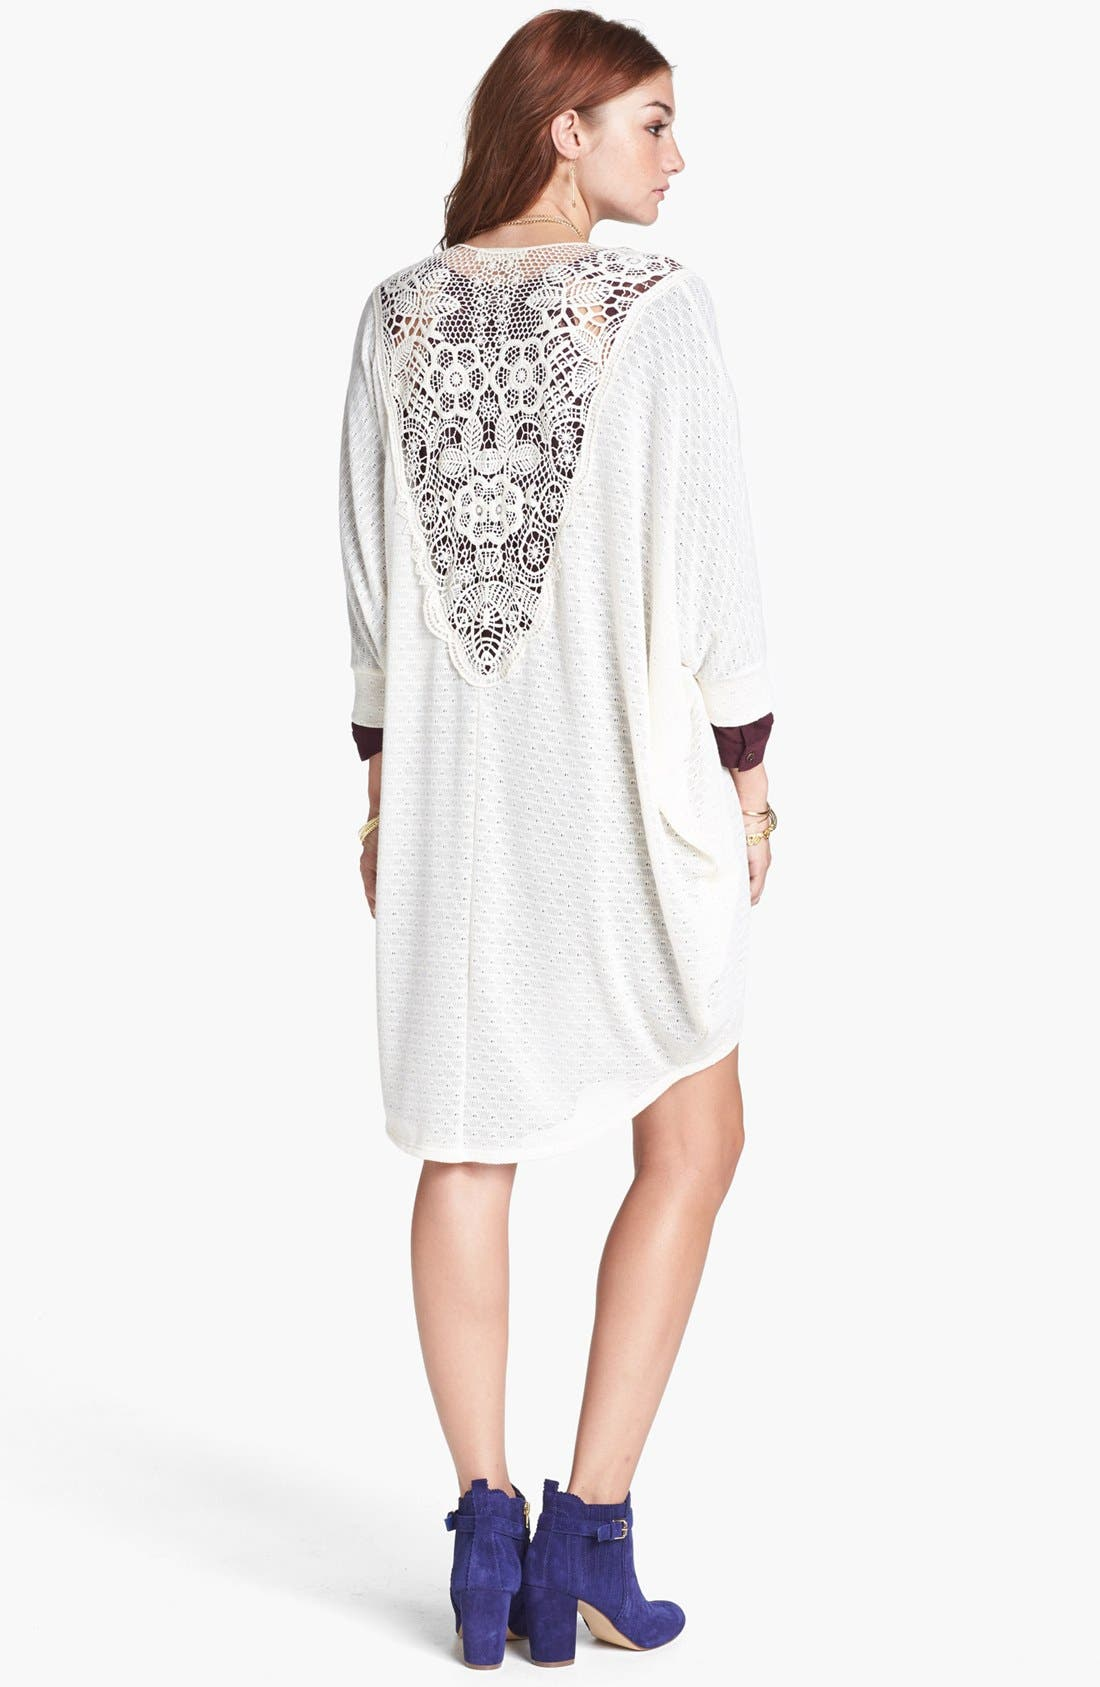 Main Image - Painted Threads 'Mary Kate' Crochet Back High/Low Cardigan (Juniors)